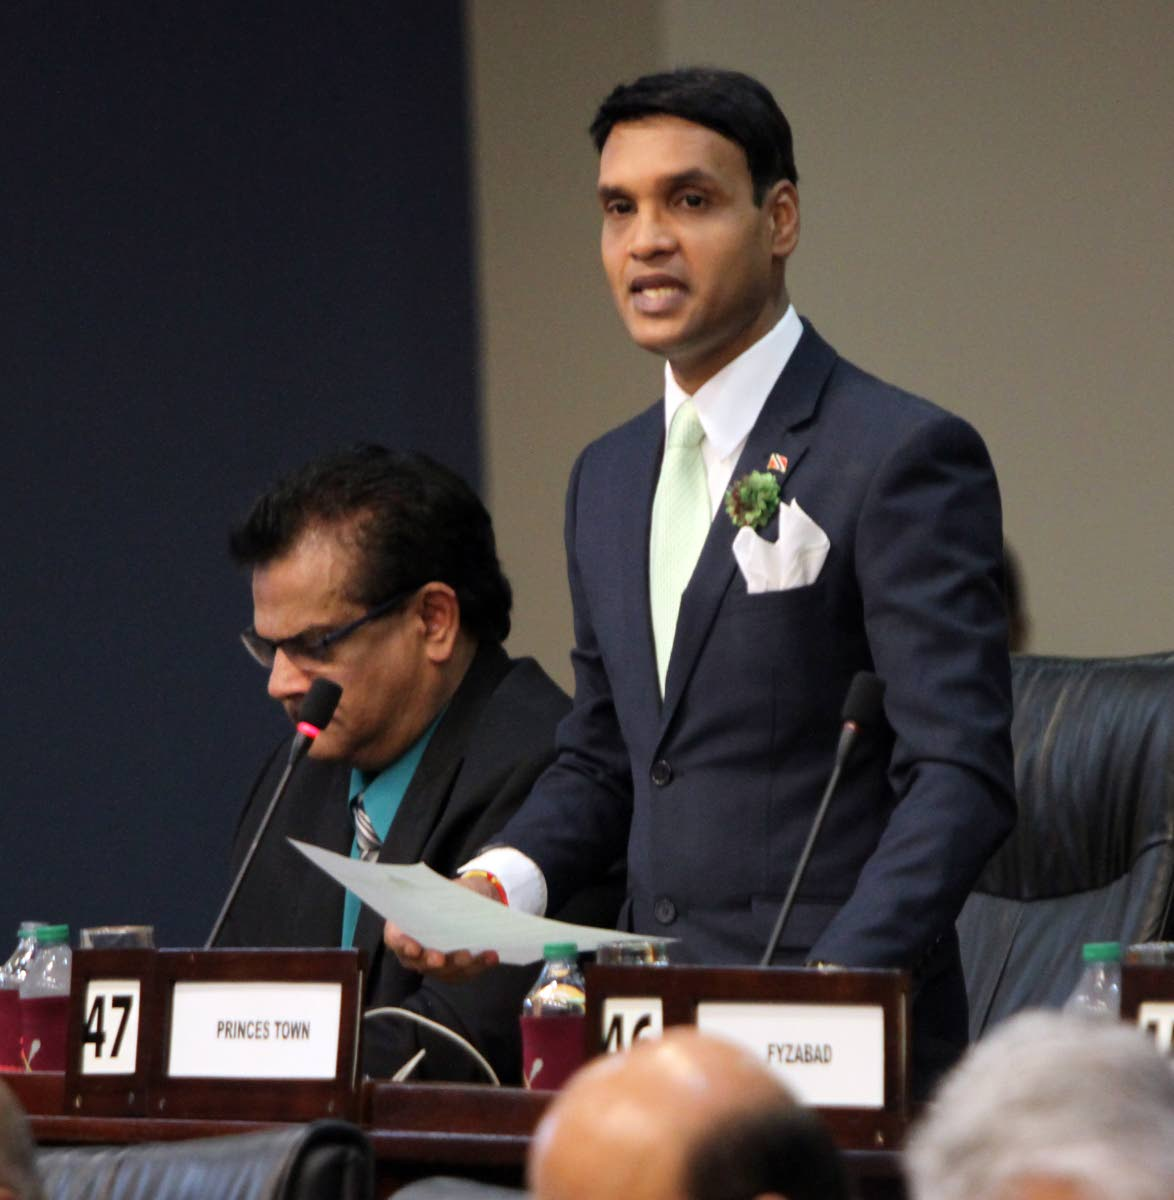 Princes Town MP Barry Padarath